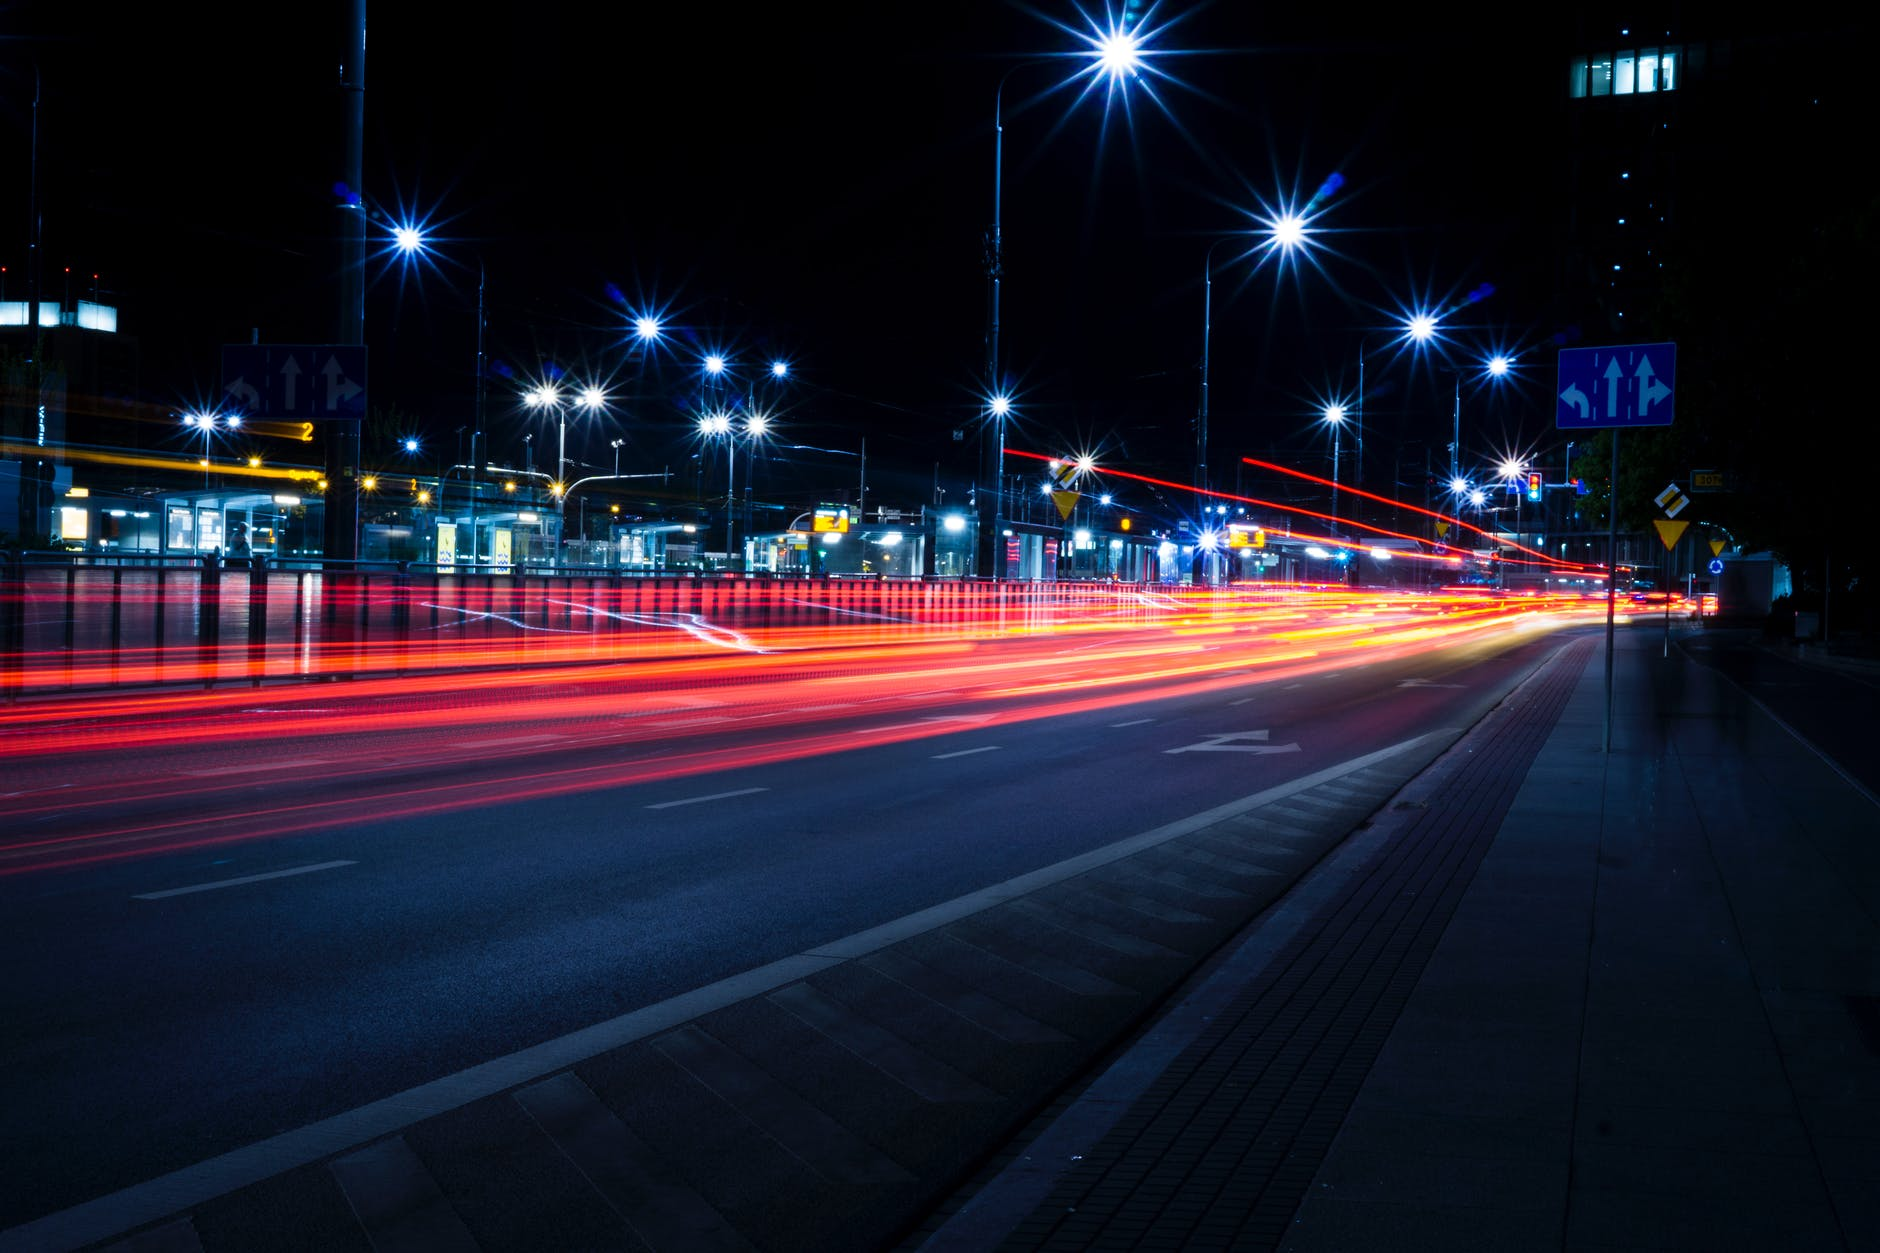 timelapse photography of streets